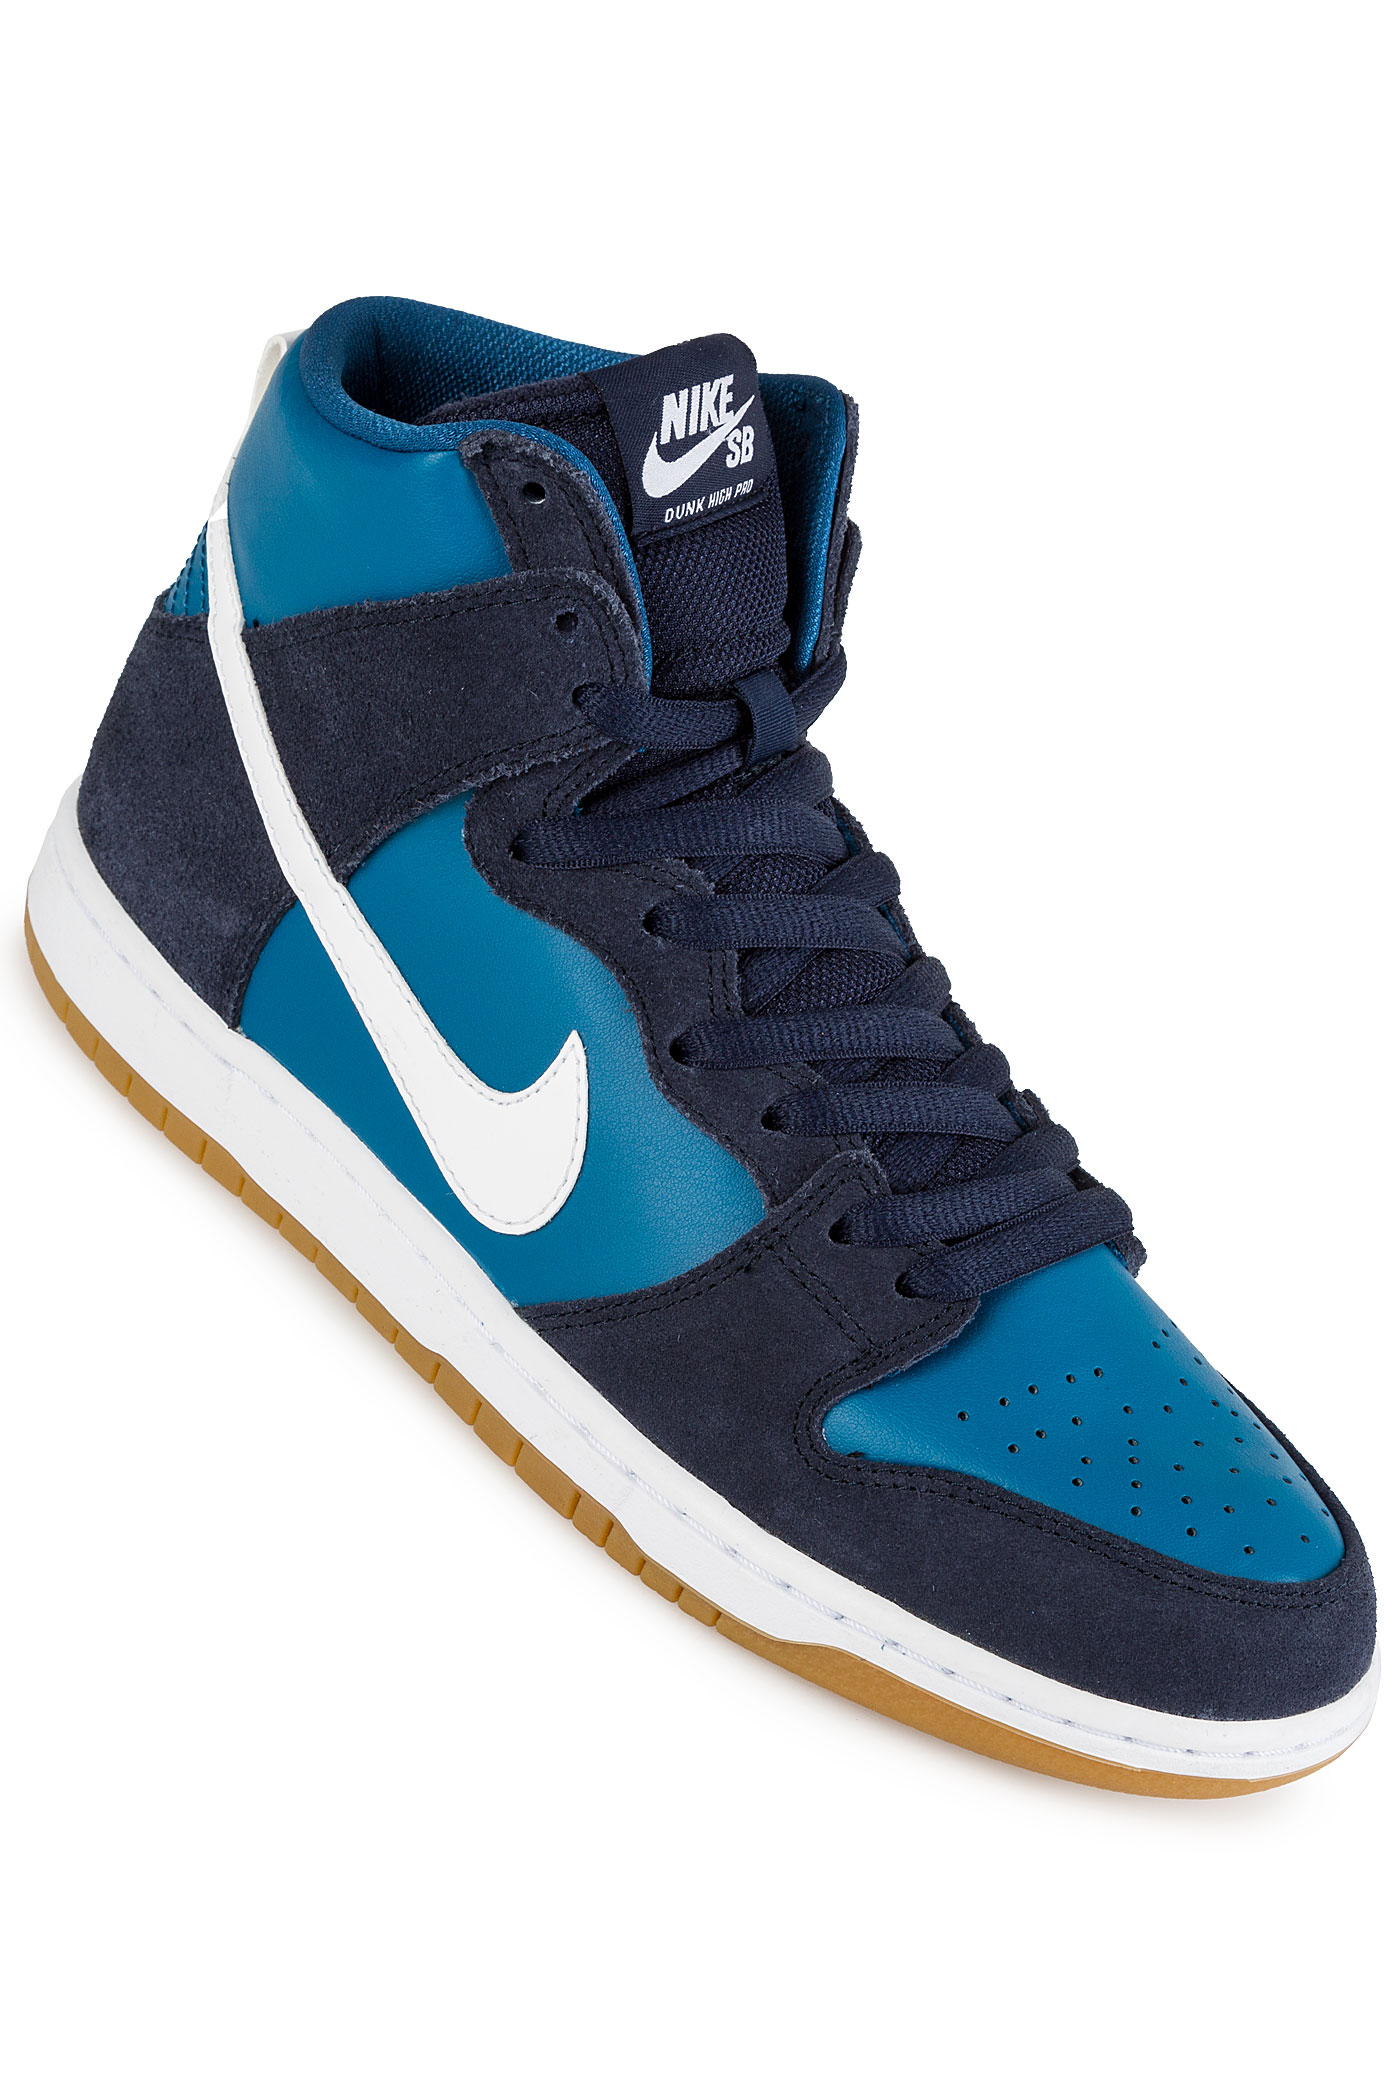 nike sb dunk high pro chaussure obsidian white industrial blue achetez sur skatedeluxe. Black Bedroom Furniture Sets. Home Design Ideas